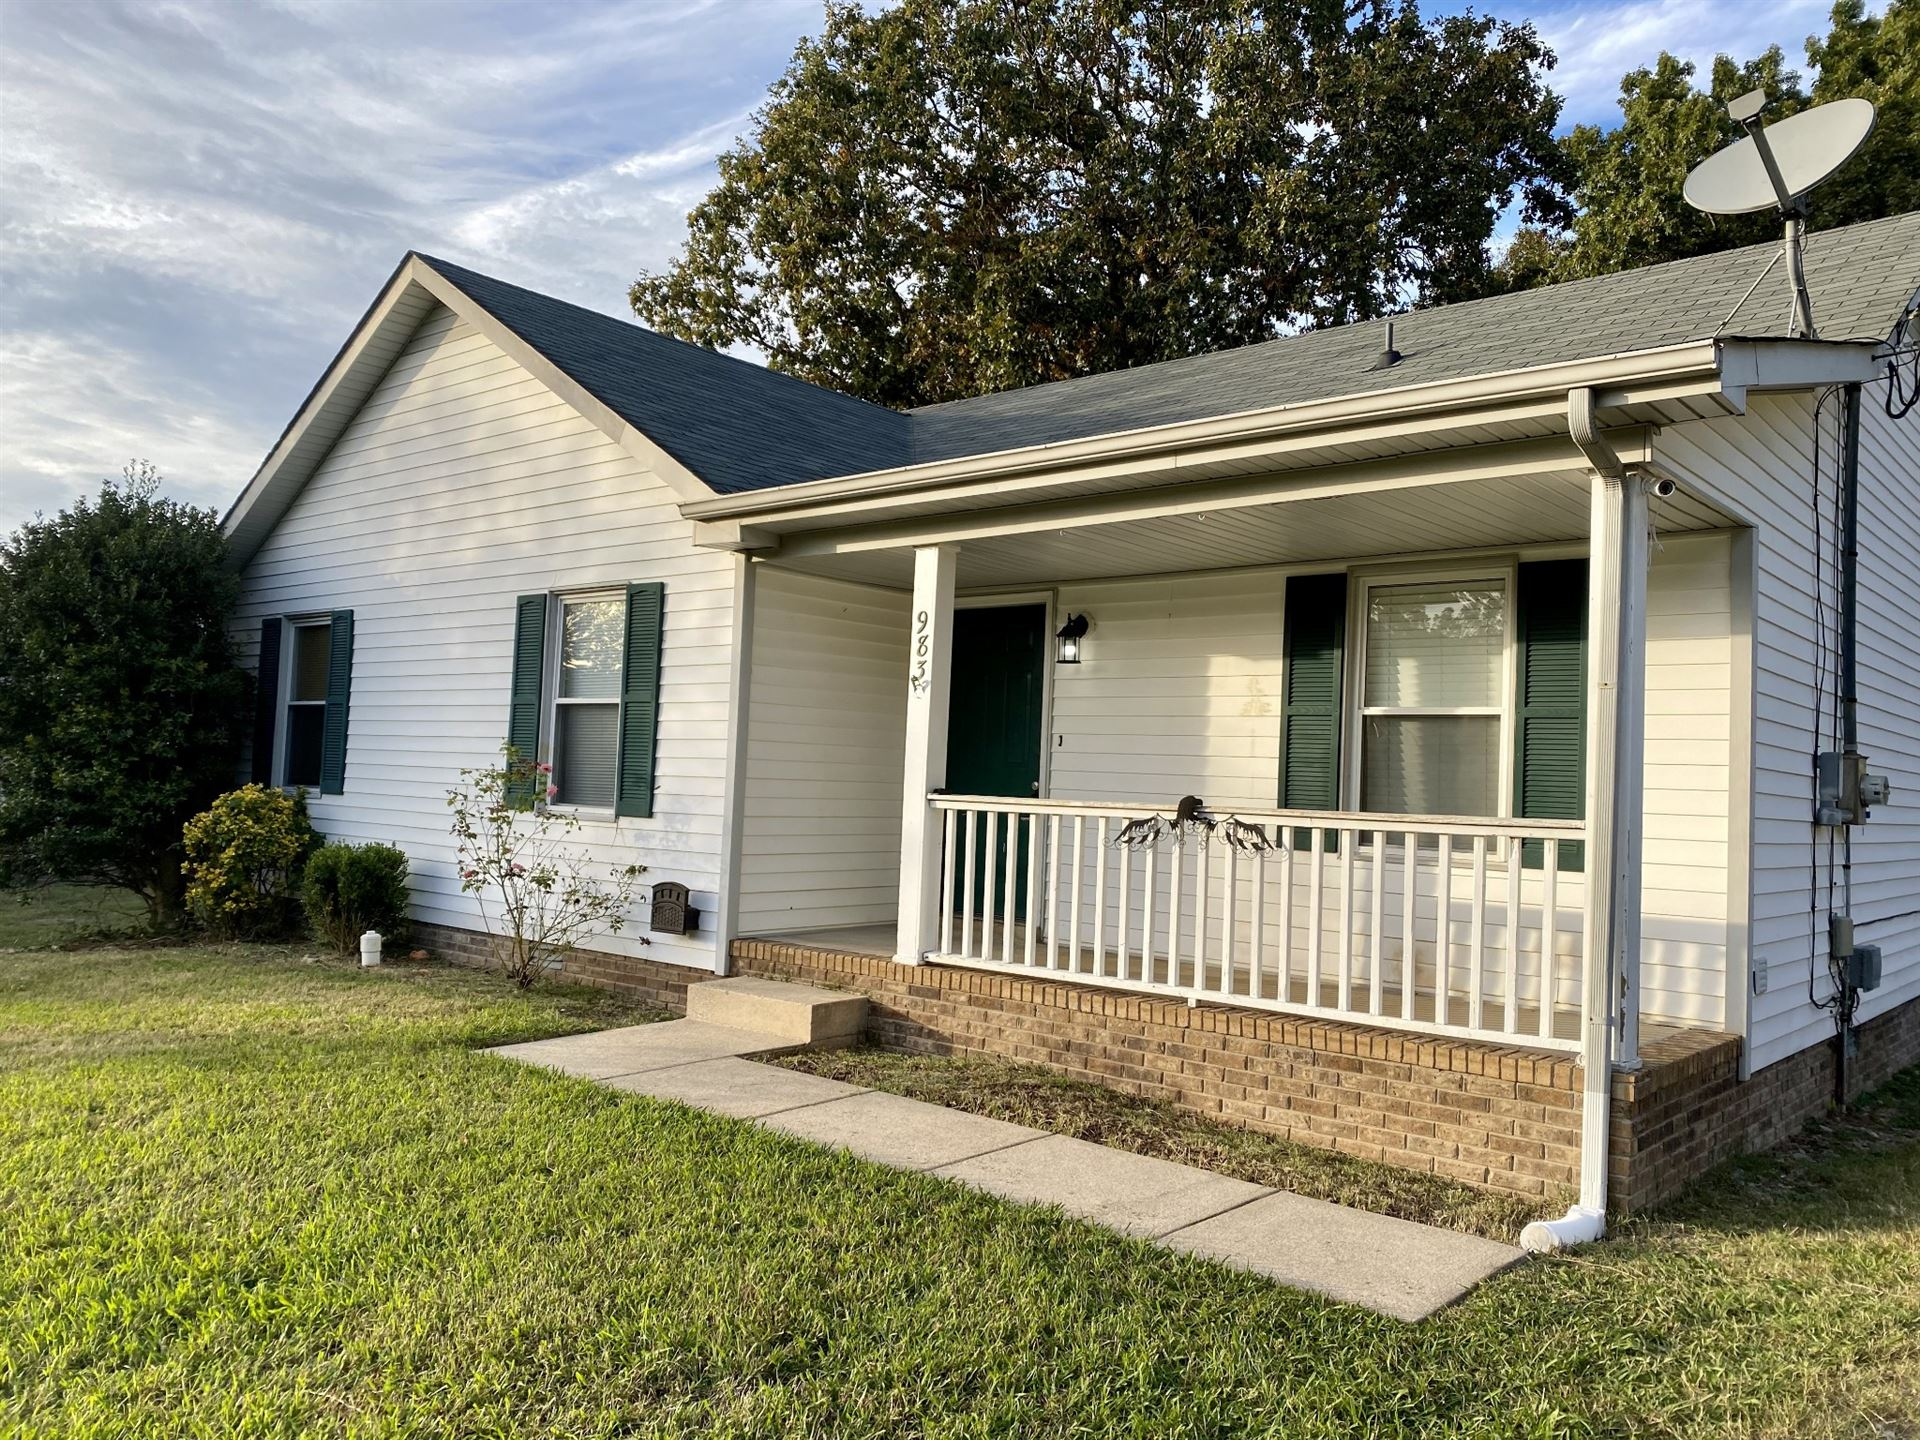 Photo of 983 May Apple Dr, Clarksville, TN 37042 (MLS # 2303666)